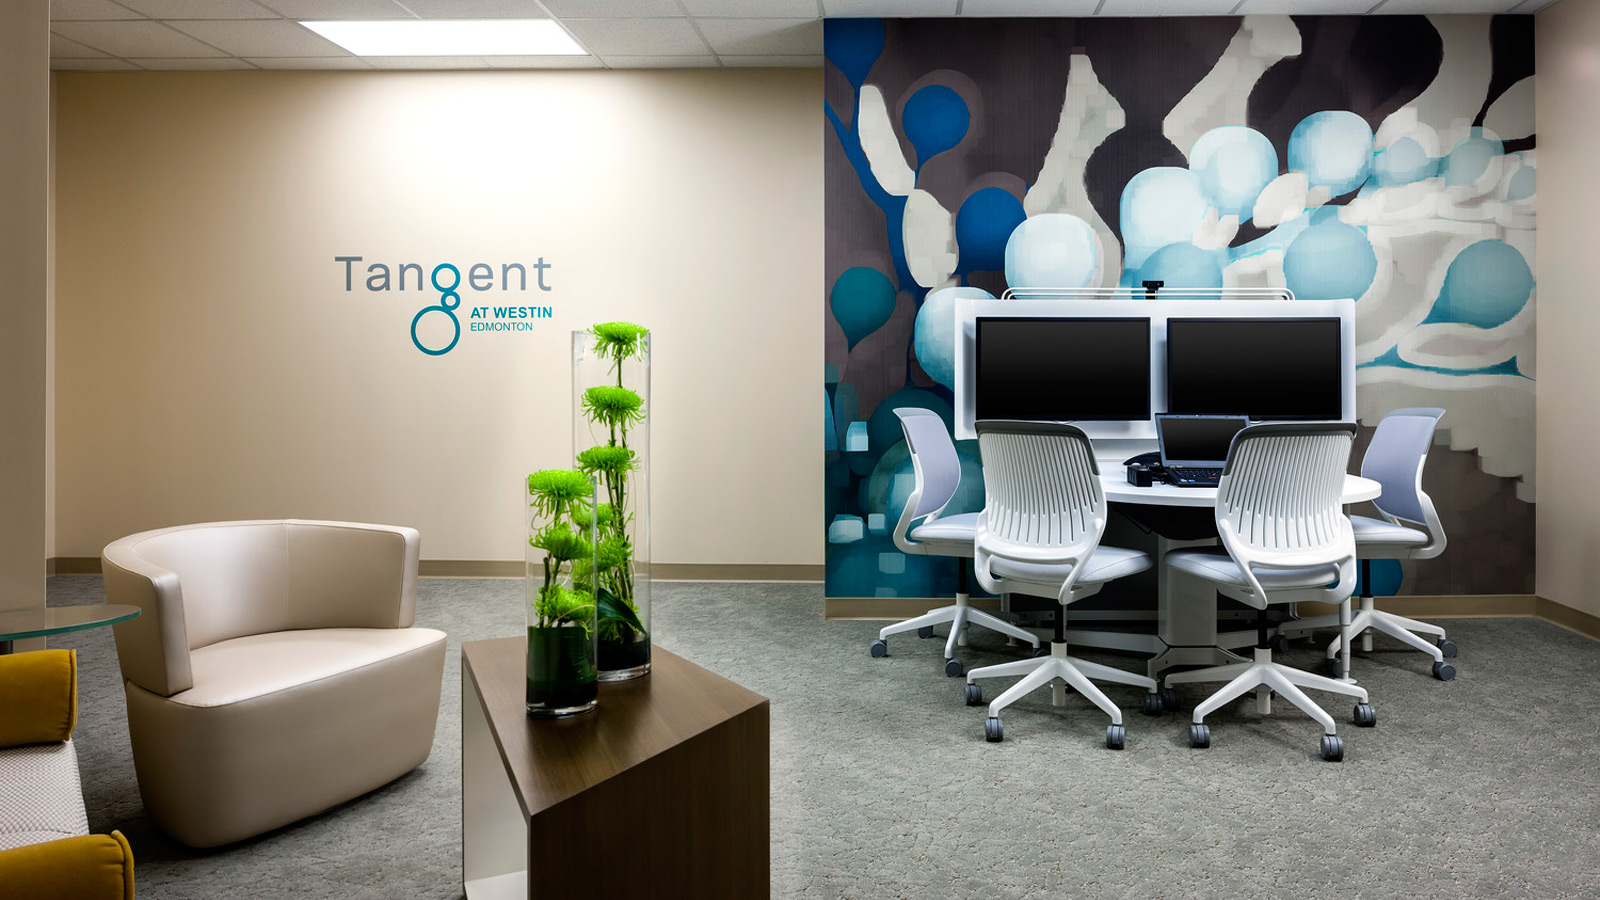 Edmonton Meeting Space - Tangent by Westin